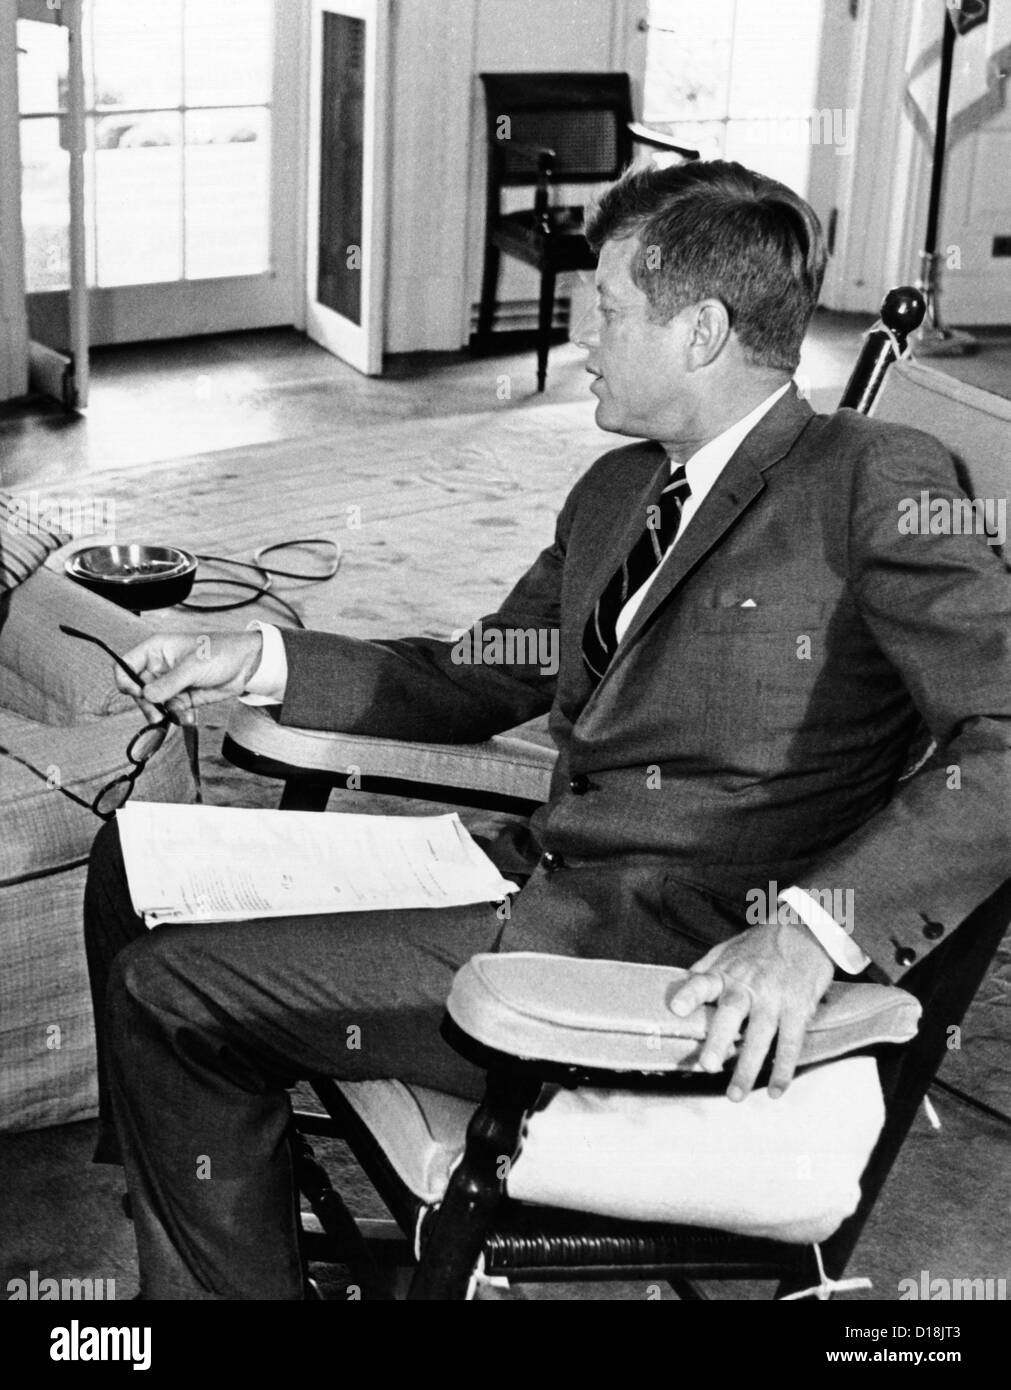 jfk in oval office. President John Kennedy In His Oval Office Rocking Chair. The Chair Relieved Tension JFK\u0027s Injured Lower Back By Keeping Jfk